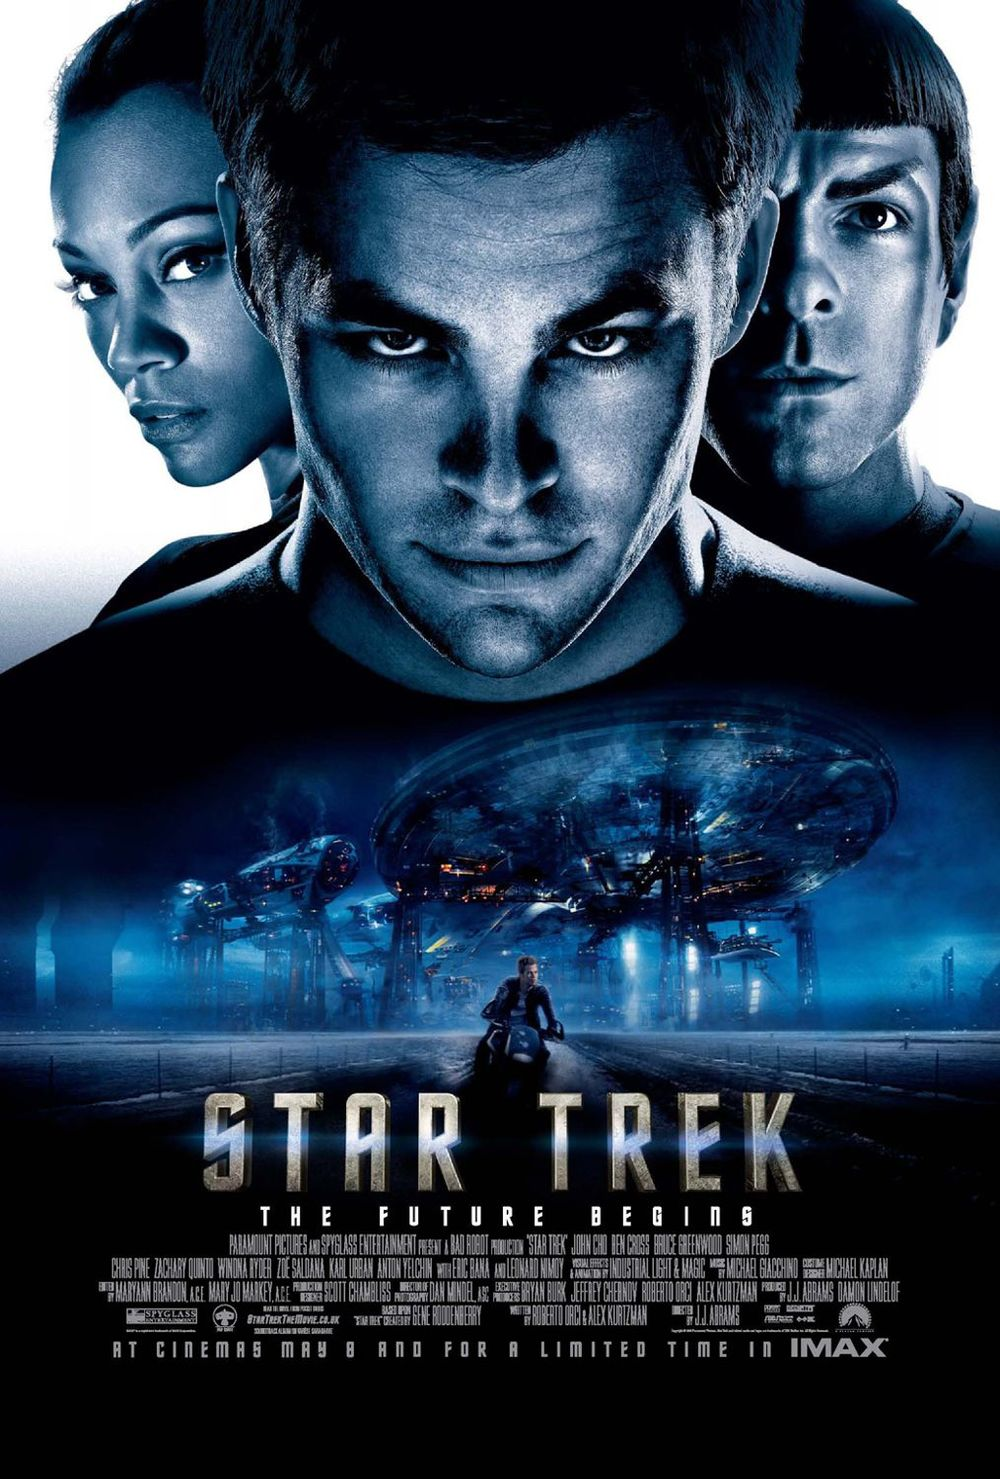 Star-Trek-2009-Movie-Poster.jpg